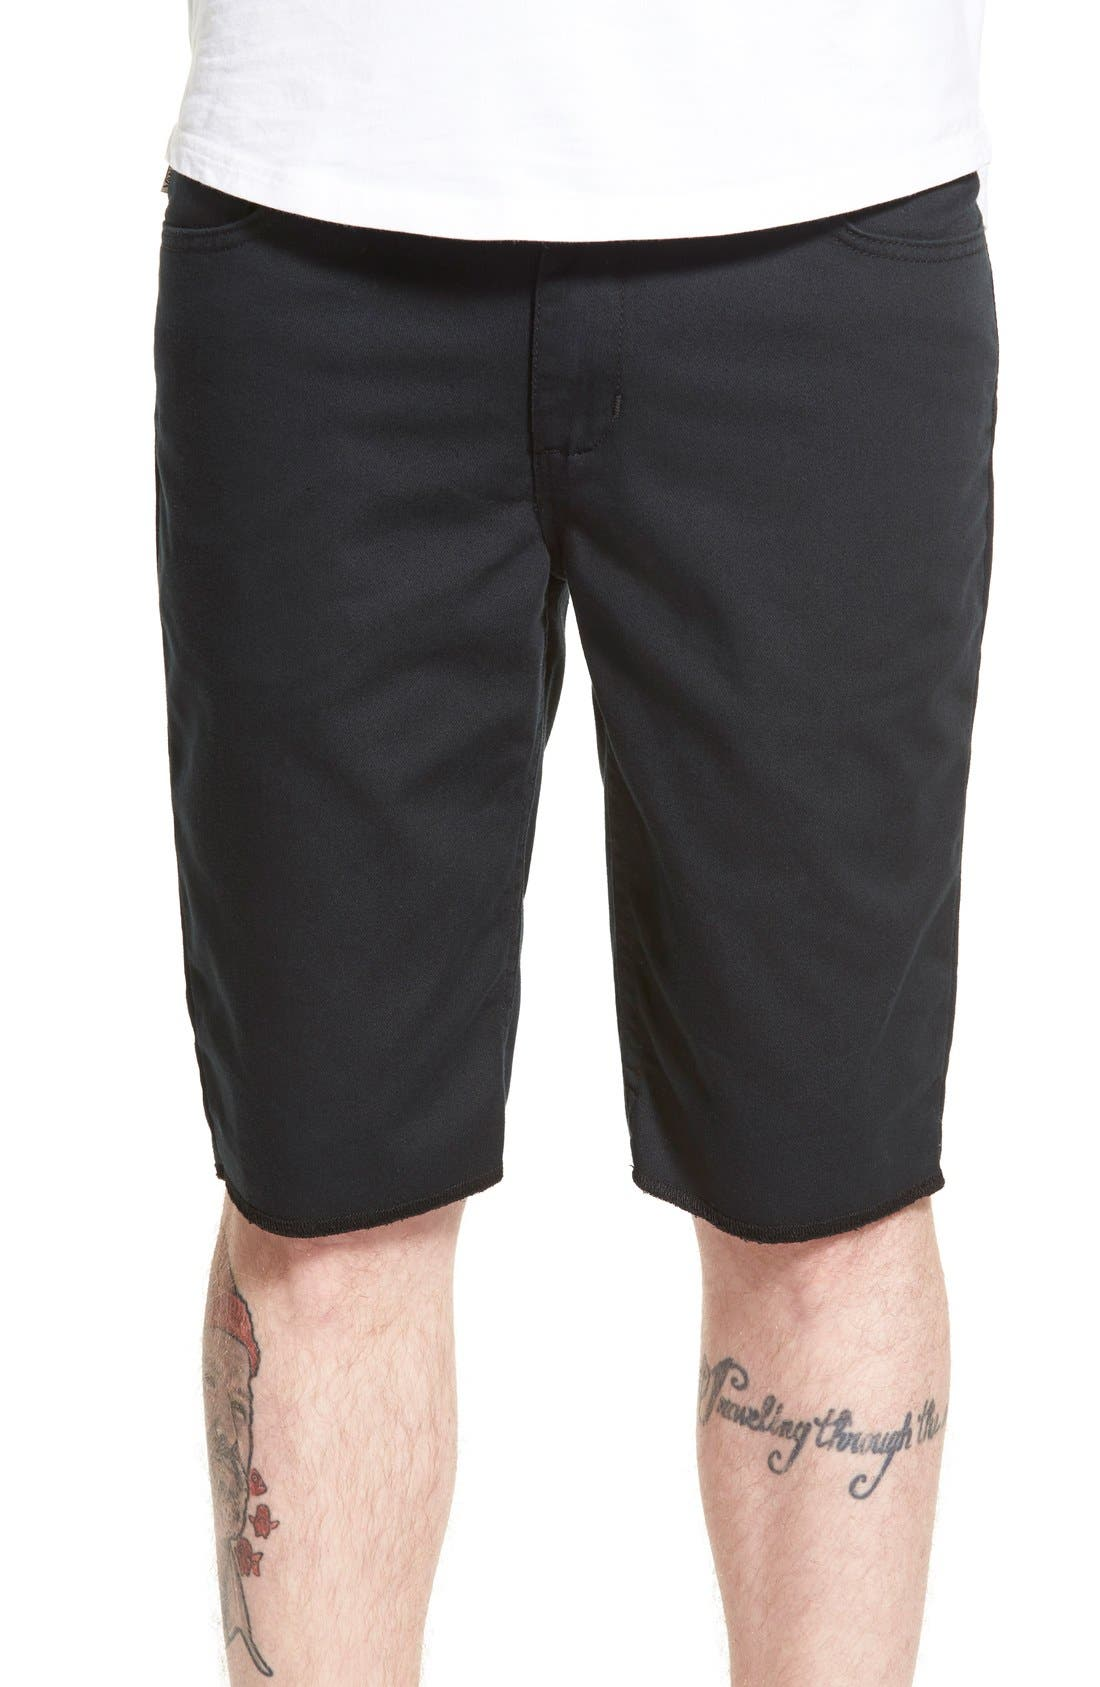 'Covina II - Anthony Van Engelen' Twill Shorts,                         Main,                         color, 001